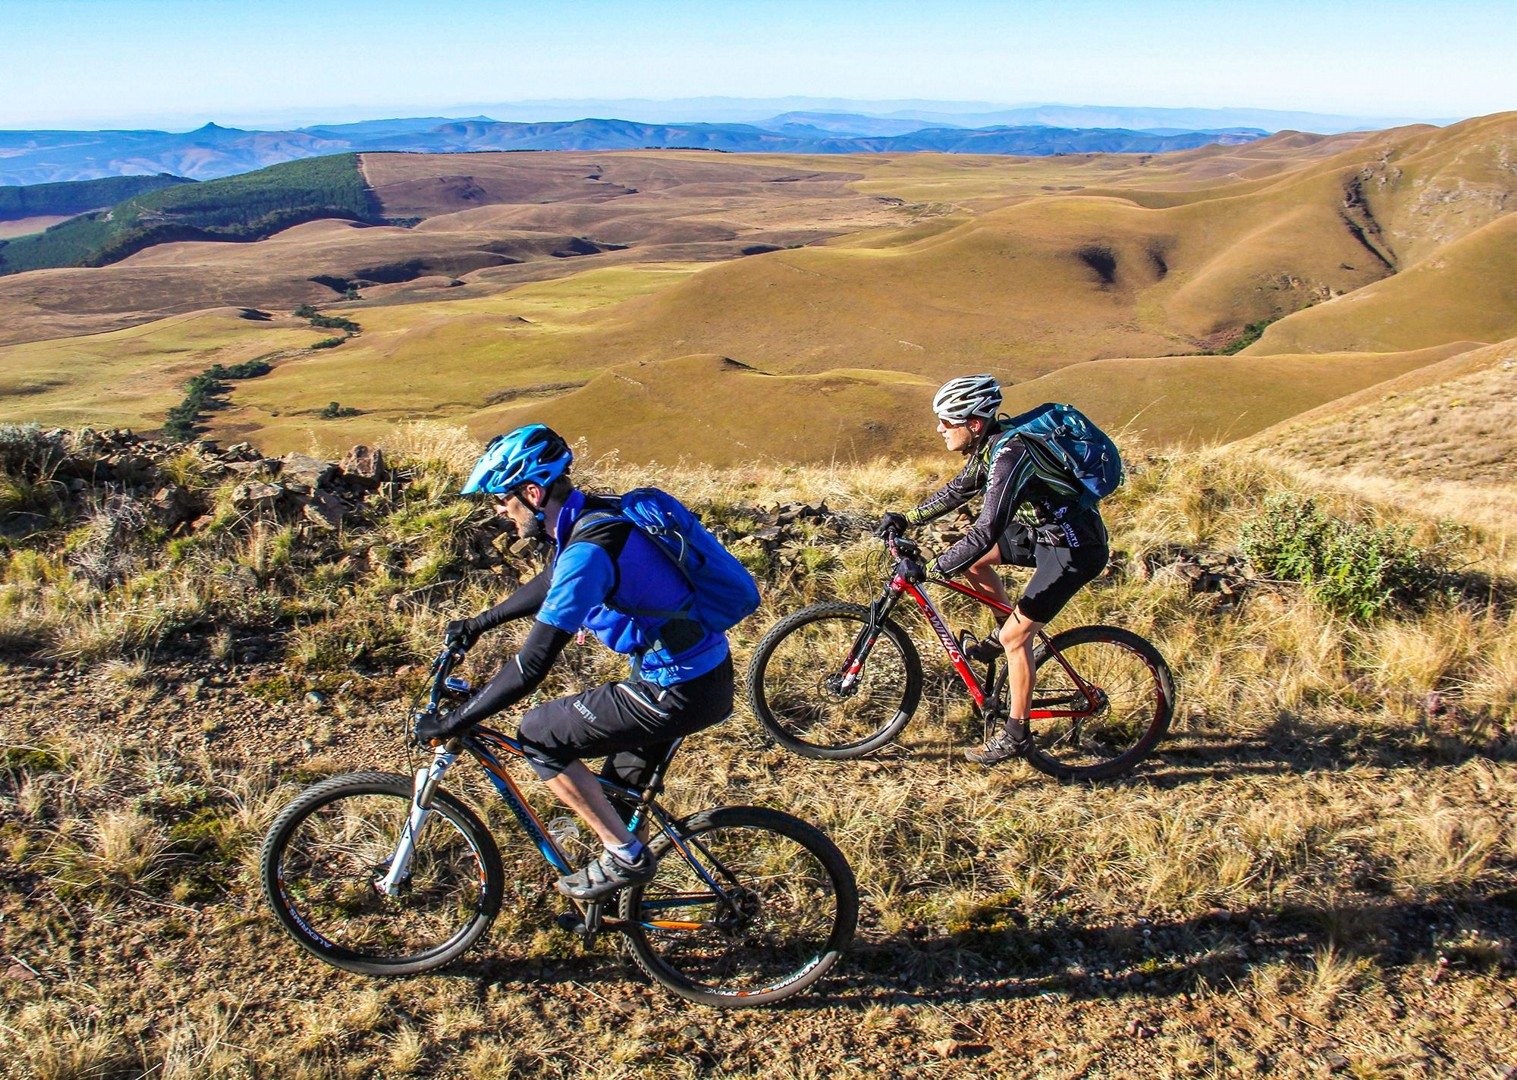 land-of-the-giants-trip-south-africa-and-botswana-guided-mtb.jpg - NEW! South Africa and Botswana - Mountain Biking